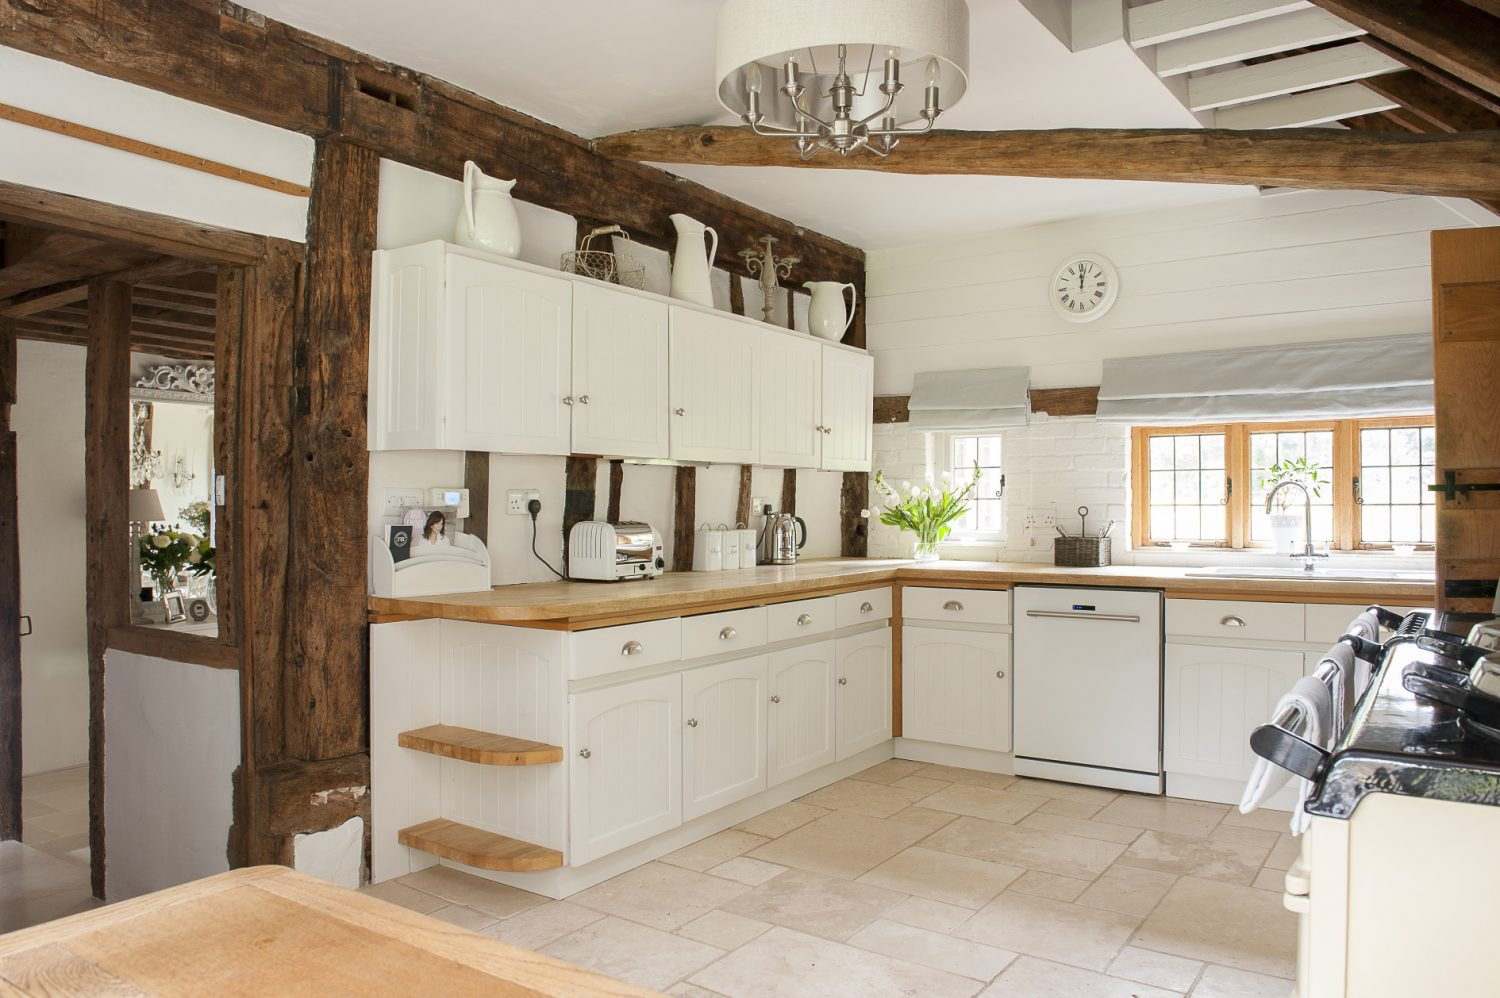 The modern, clean-white kitchen contrasts with the rustic beams and period features of this Wealden farmhouse